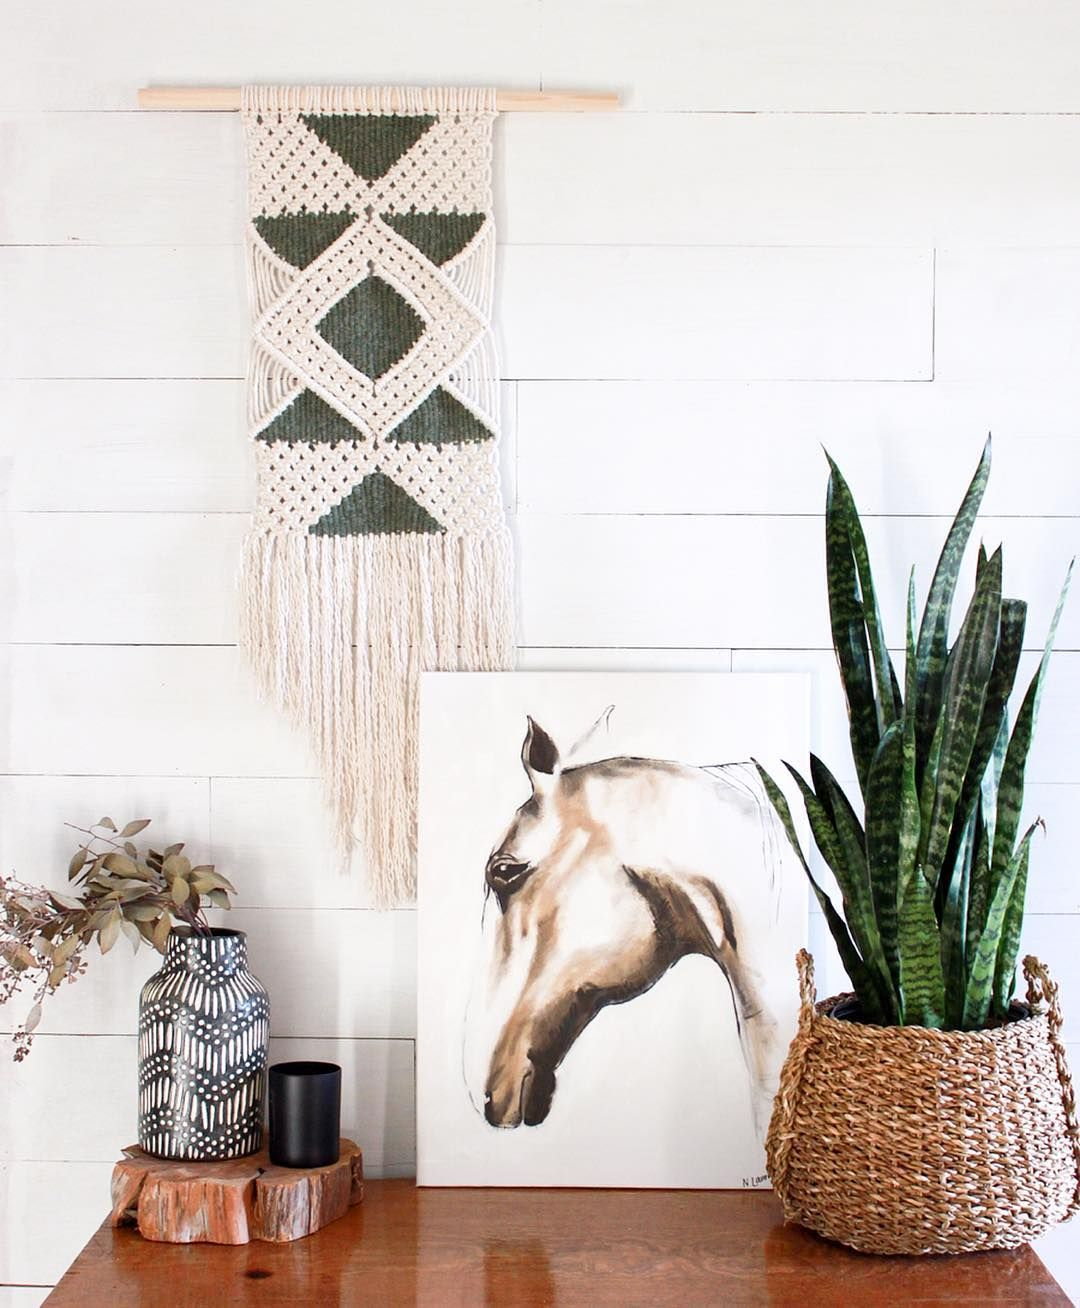 Macrame Wall Hanging With Woven Details By Studio Shepherd Southwest Style Interior Design Macrame Wall Hanging Wall Hanging Woven Wall Hanging